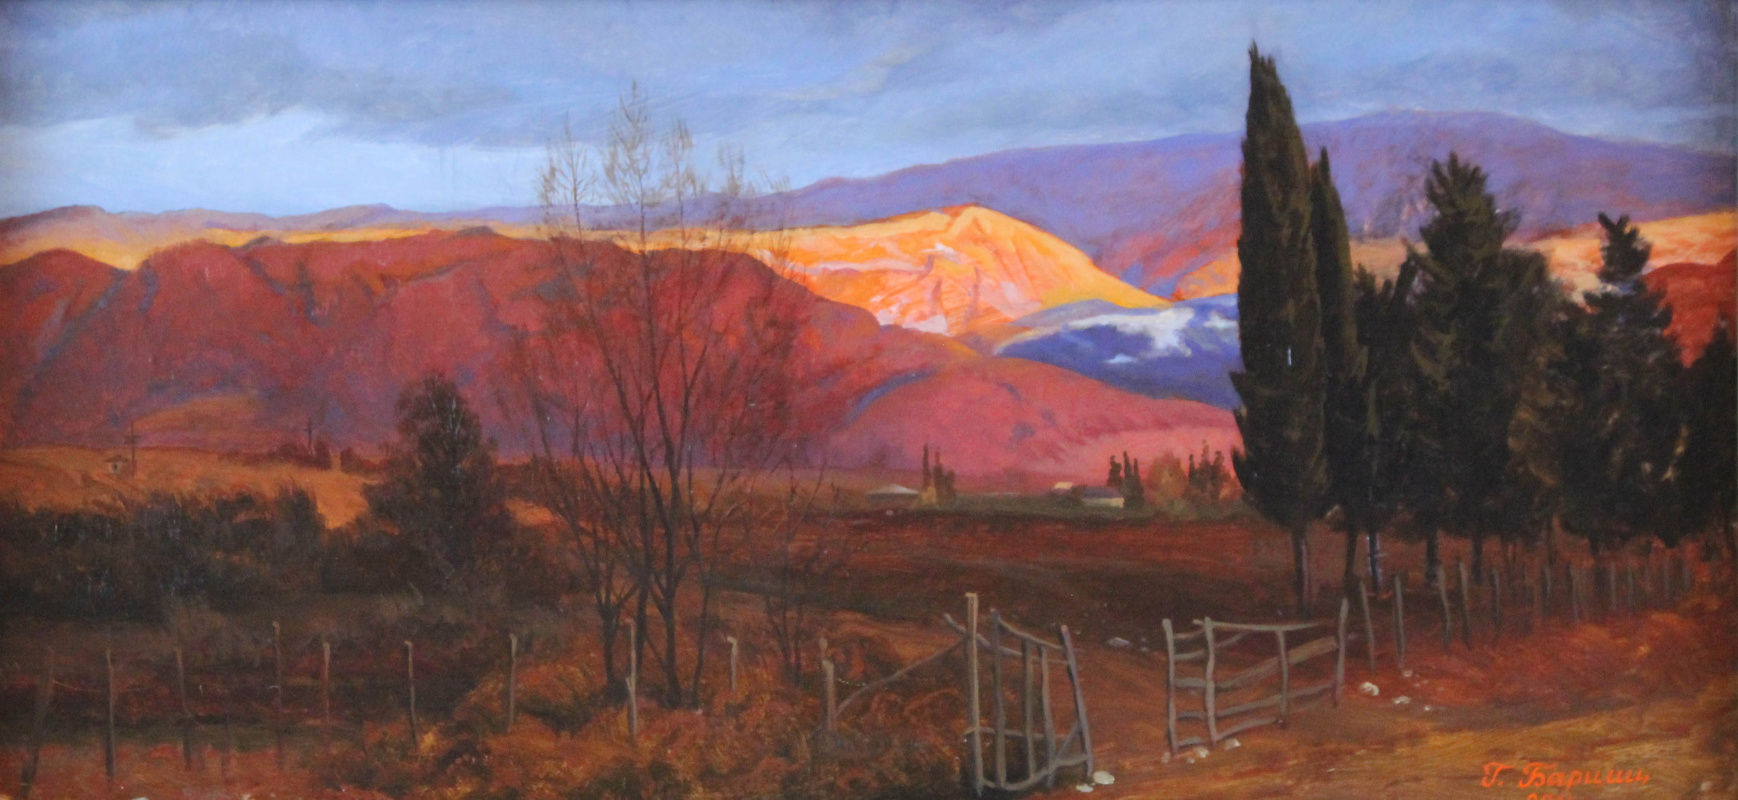 Gennady Shotovich Bartsyts (Bartsits). Winter evening in the mountains